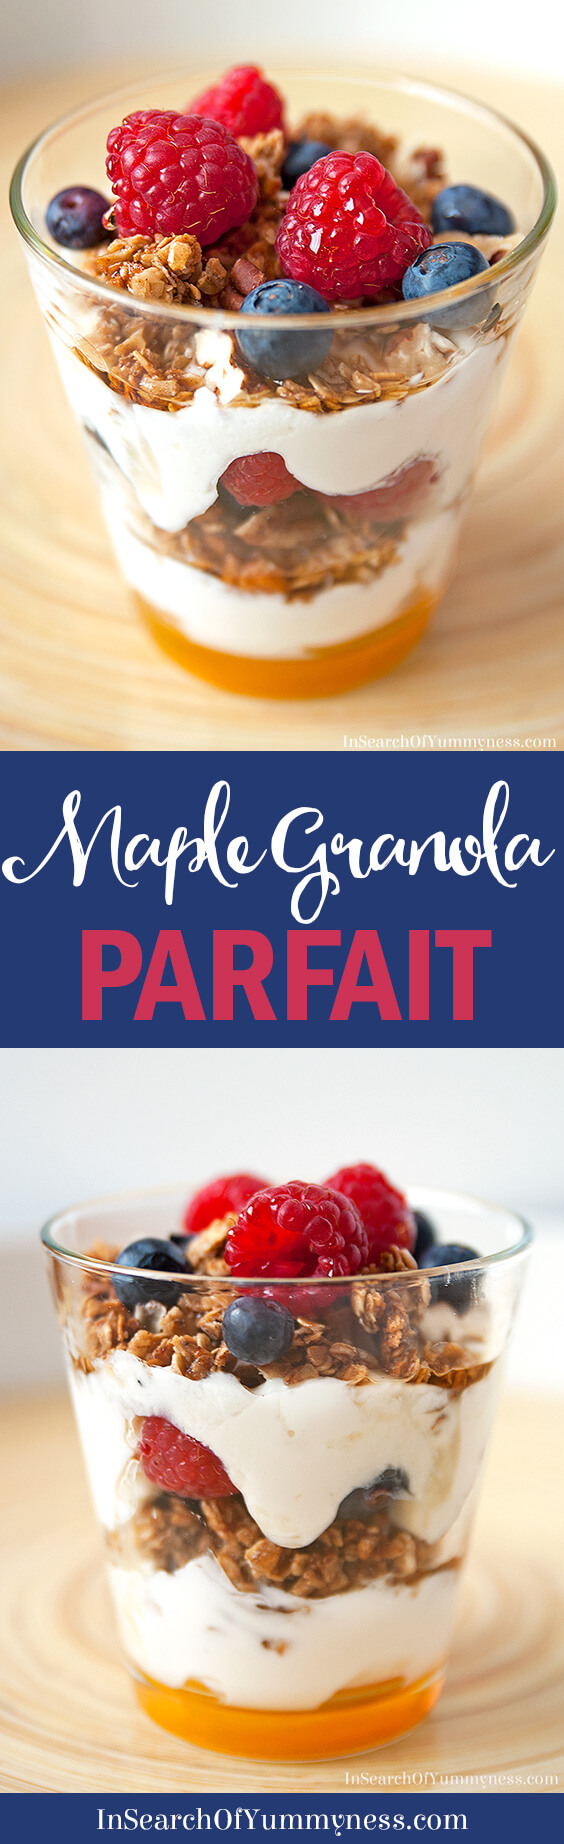 Need a quick breakfast idea? How about a Maple Granola Parfait? It's easy to put together in the morning, and tastes so much better than cold cereal. Get the recipe at InSearchOfYummyness.com.